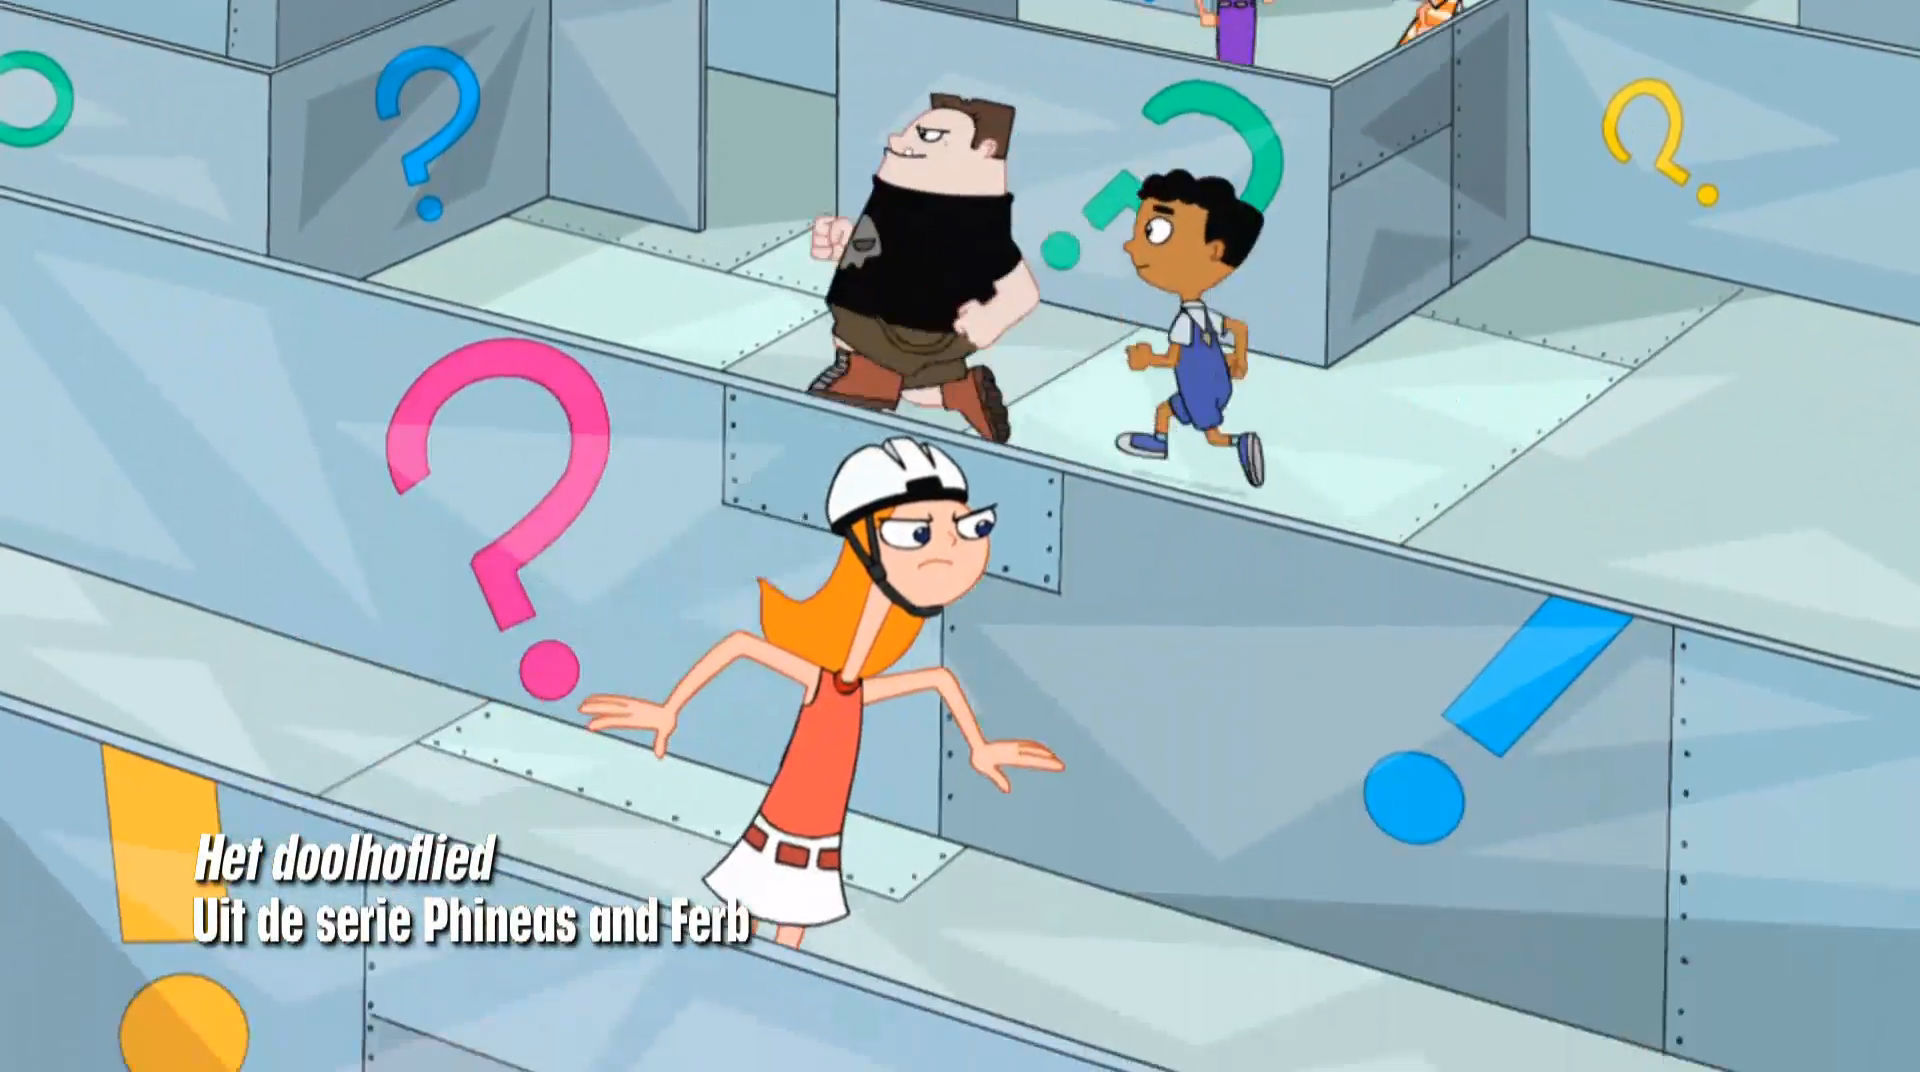 Phineas and Ferb - Het Doolhoflied